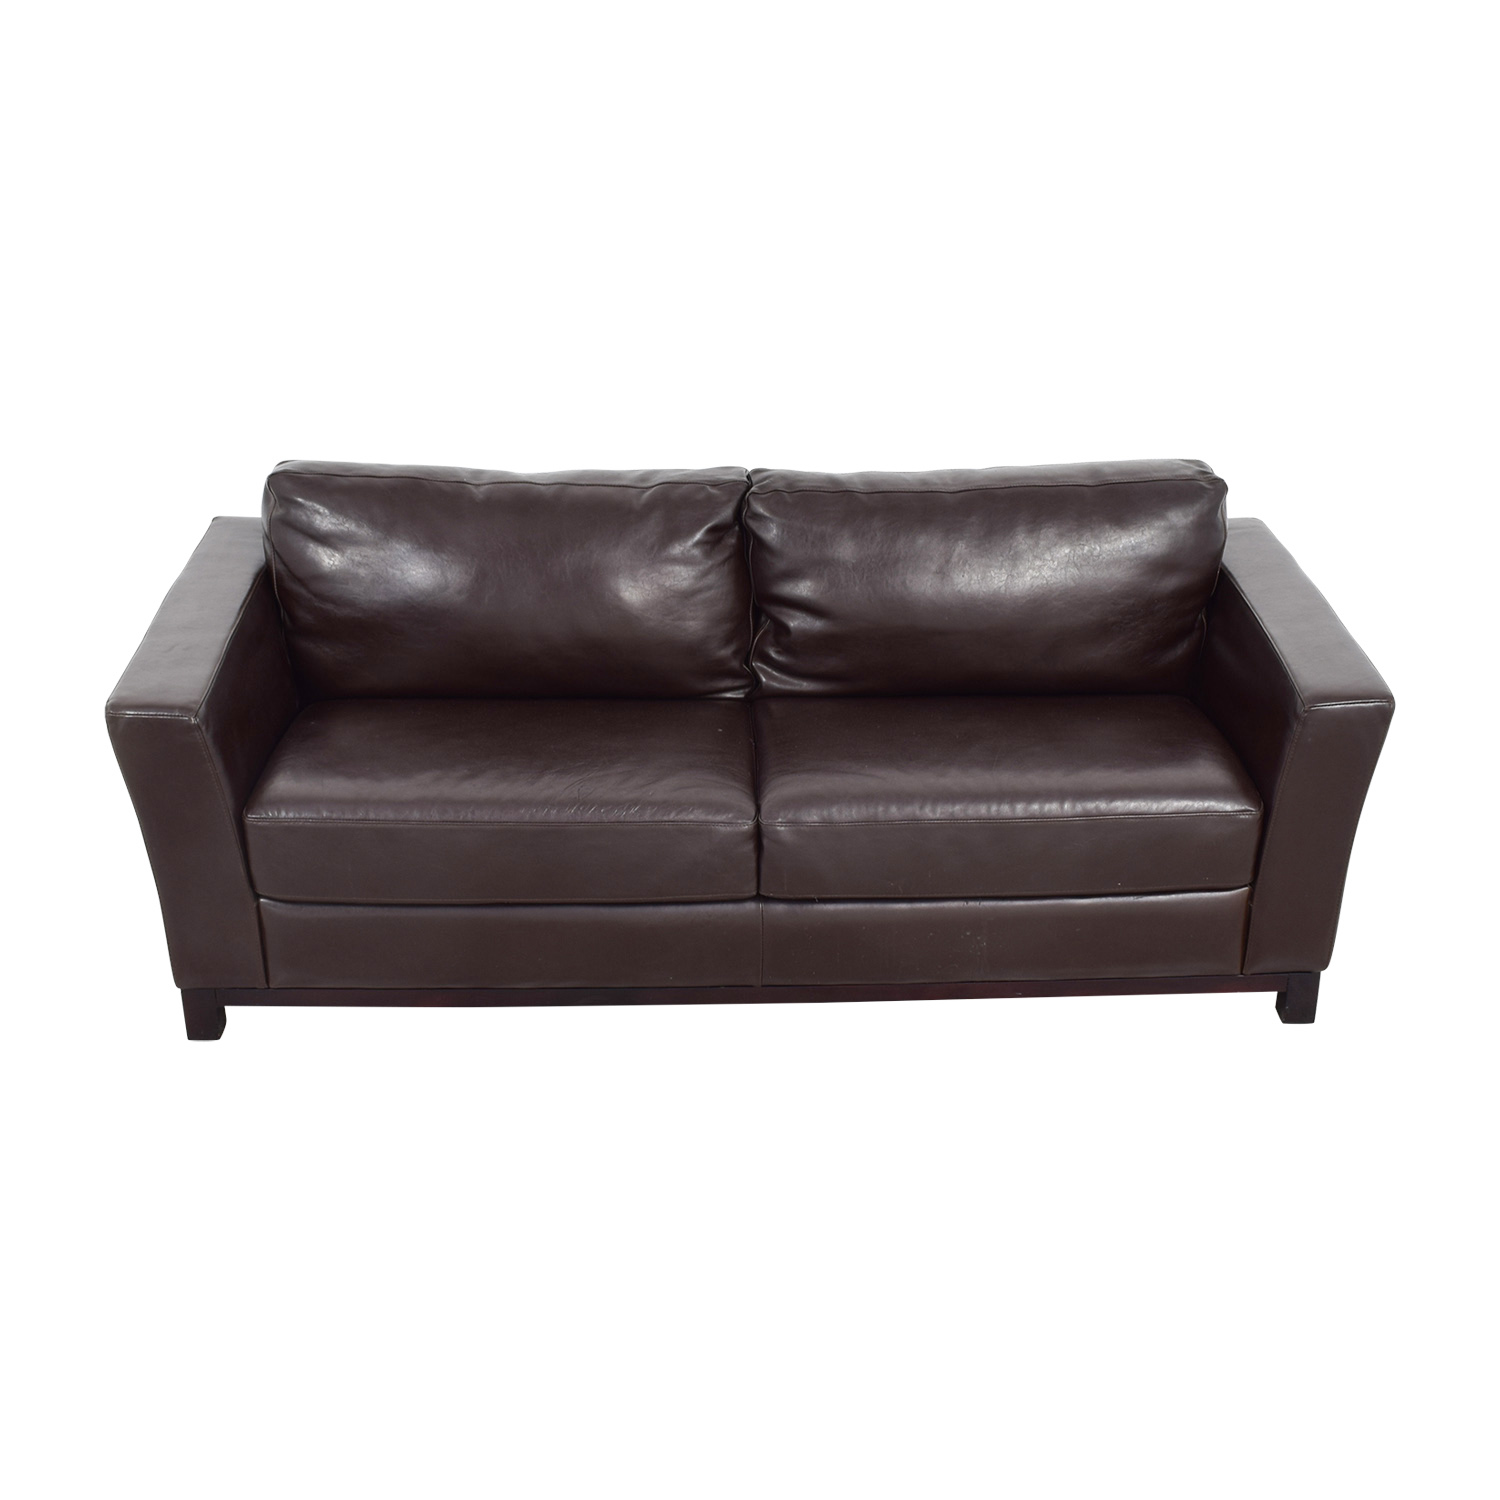 Used Sofas Online Used Furniture For Wplace Design Thesofa